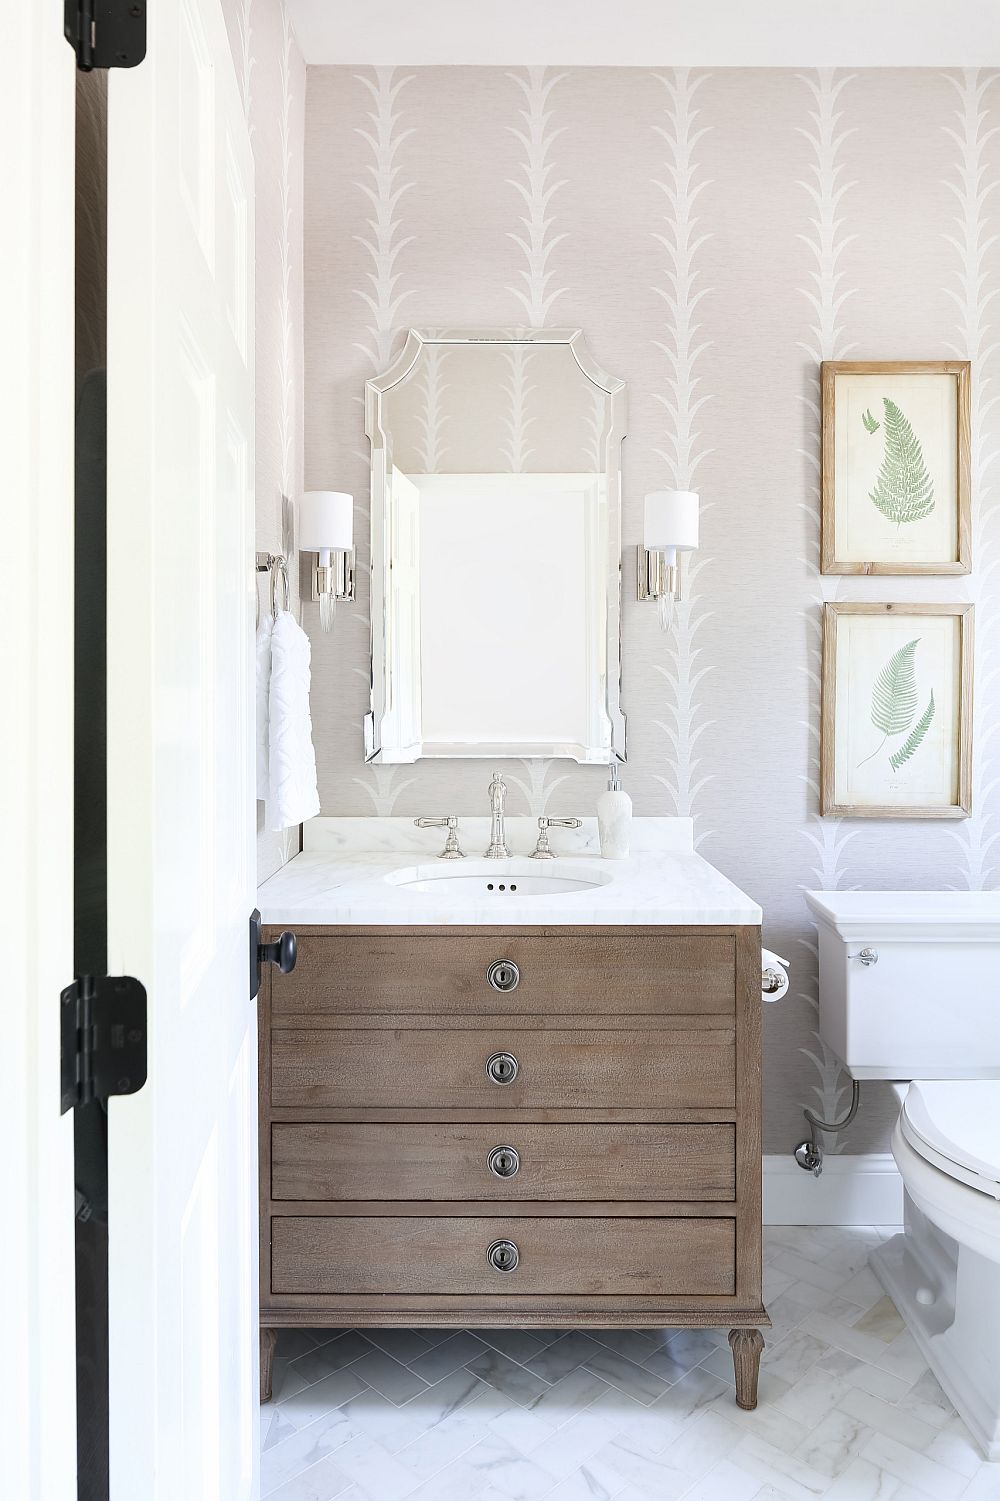 Decorating Your Bathroom Walls 15 Wall Art Ideas That Wow